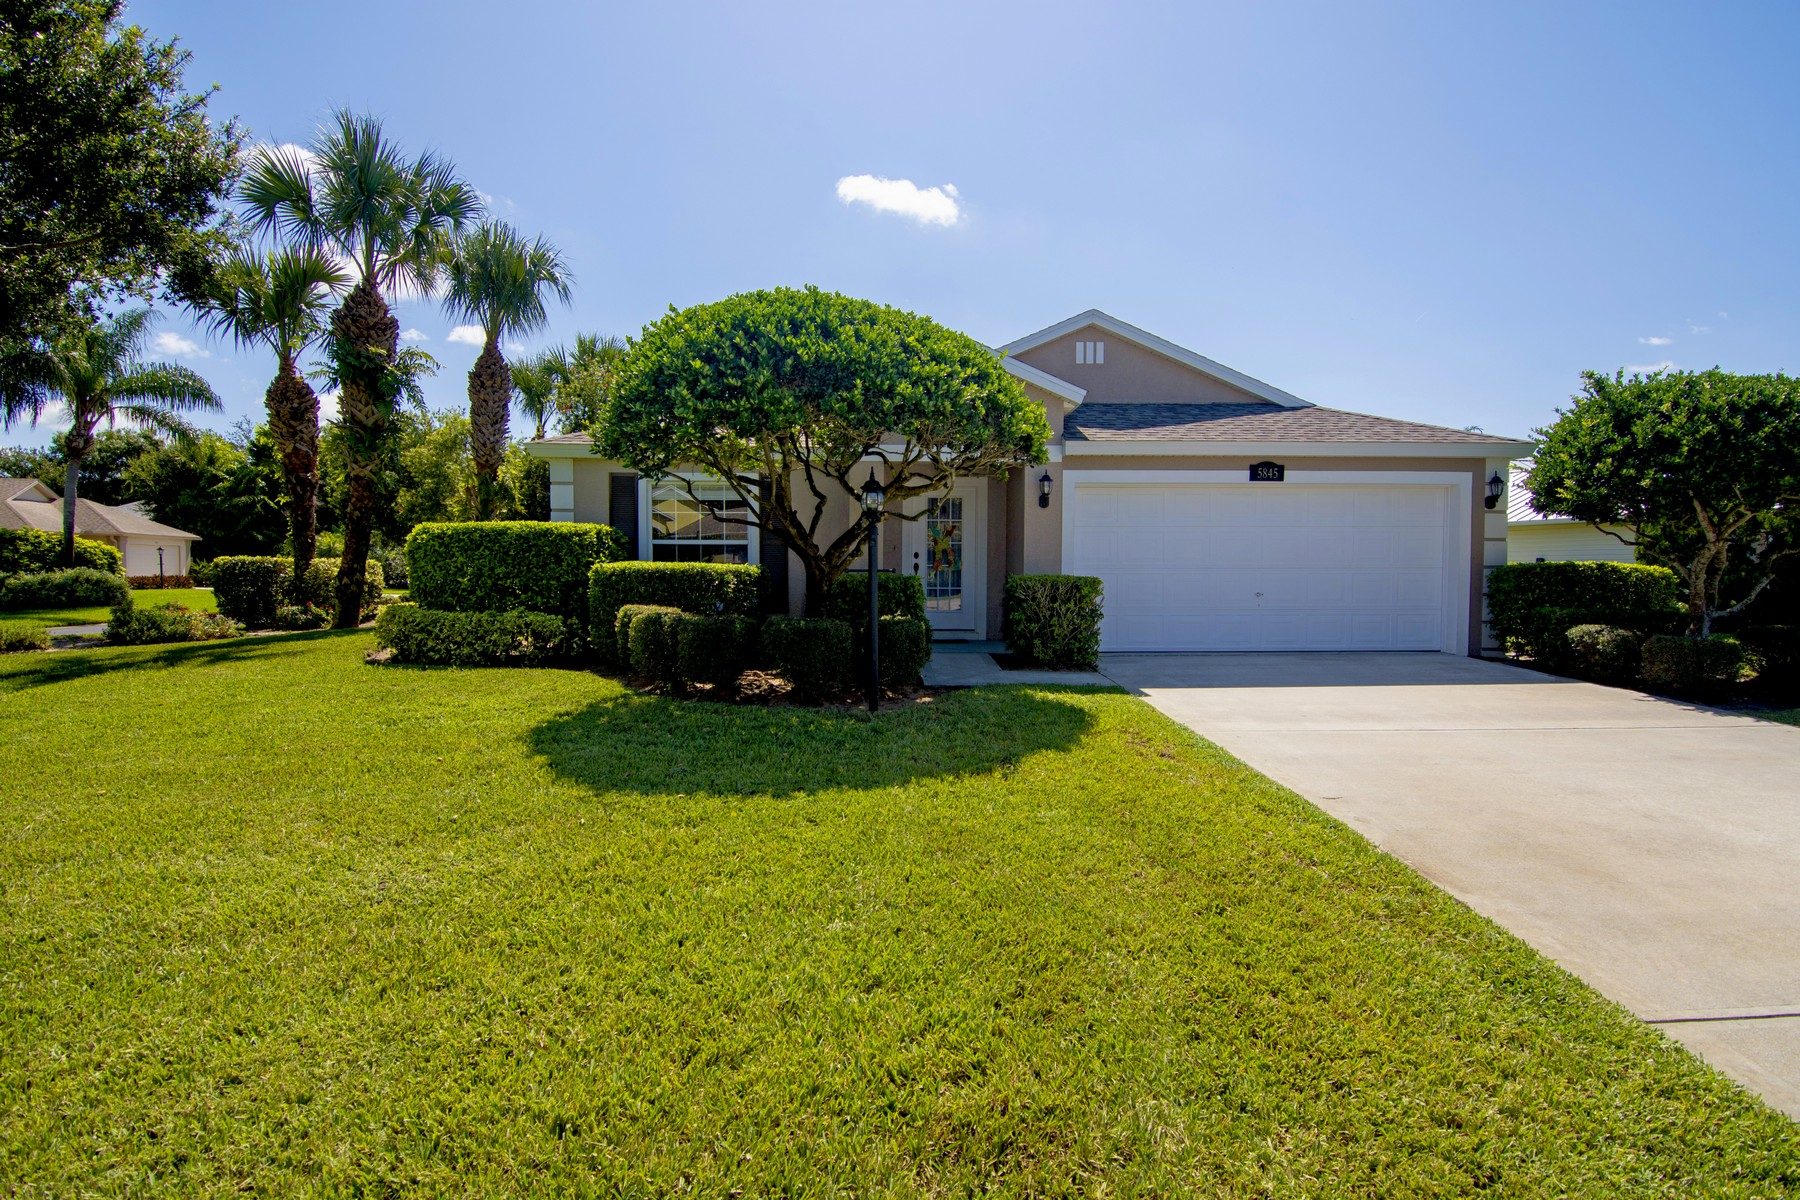 Single Family Homes for Sale at Great Neighborhood, New A/C and Roof! 5845 39th Lane Vero Beach, Florida 32966 United States